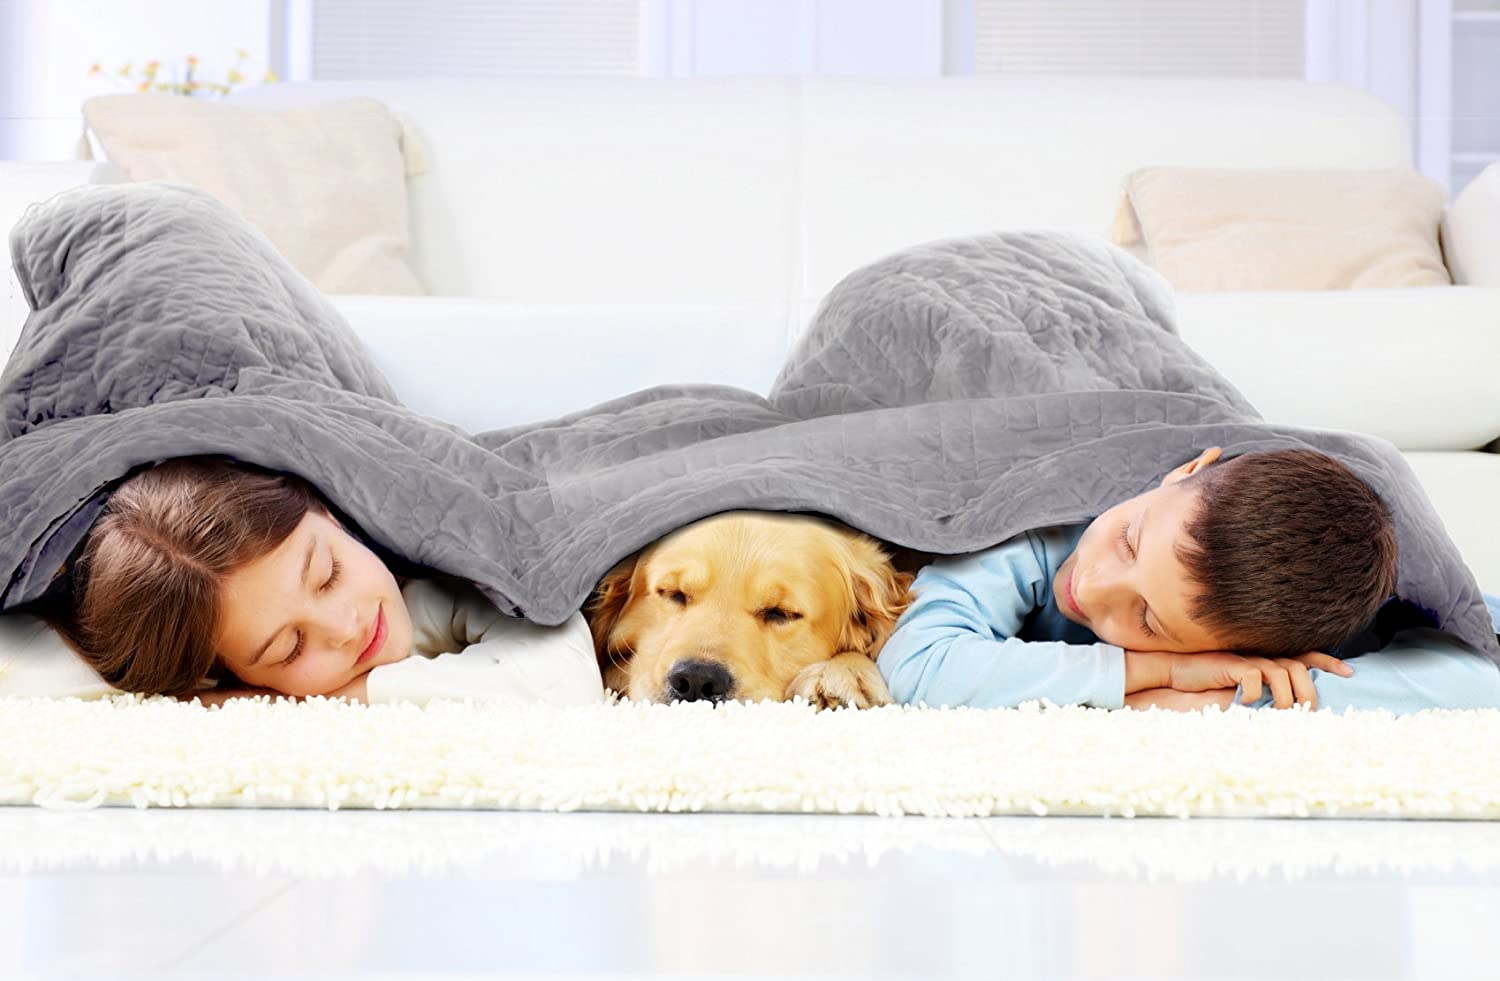 Weighted Blanket Deluxe Set - Patented ContourWave Weighted Blanket & Luxurious Micro-Plush Cover